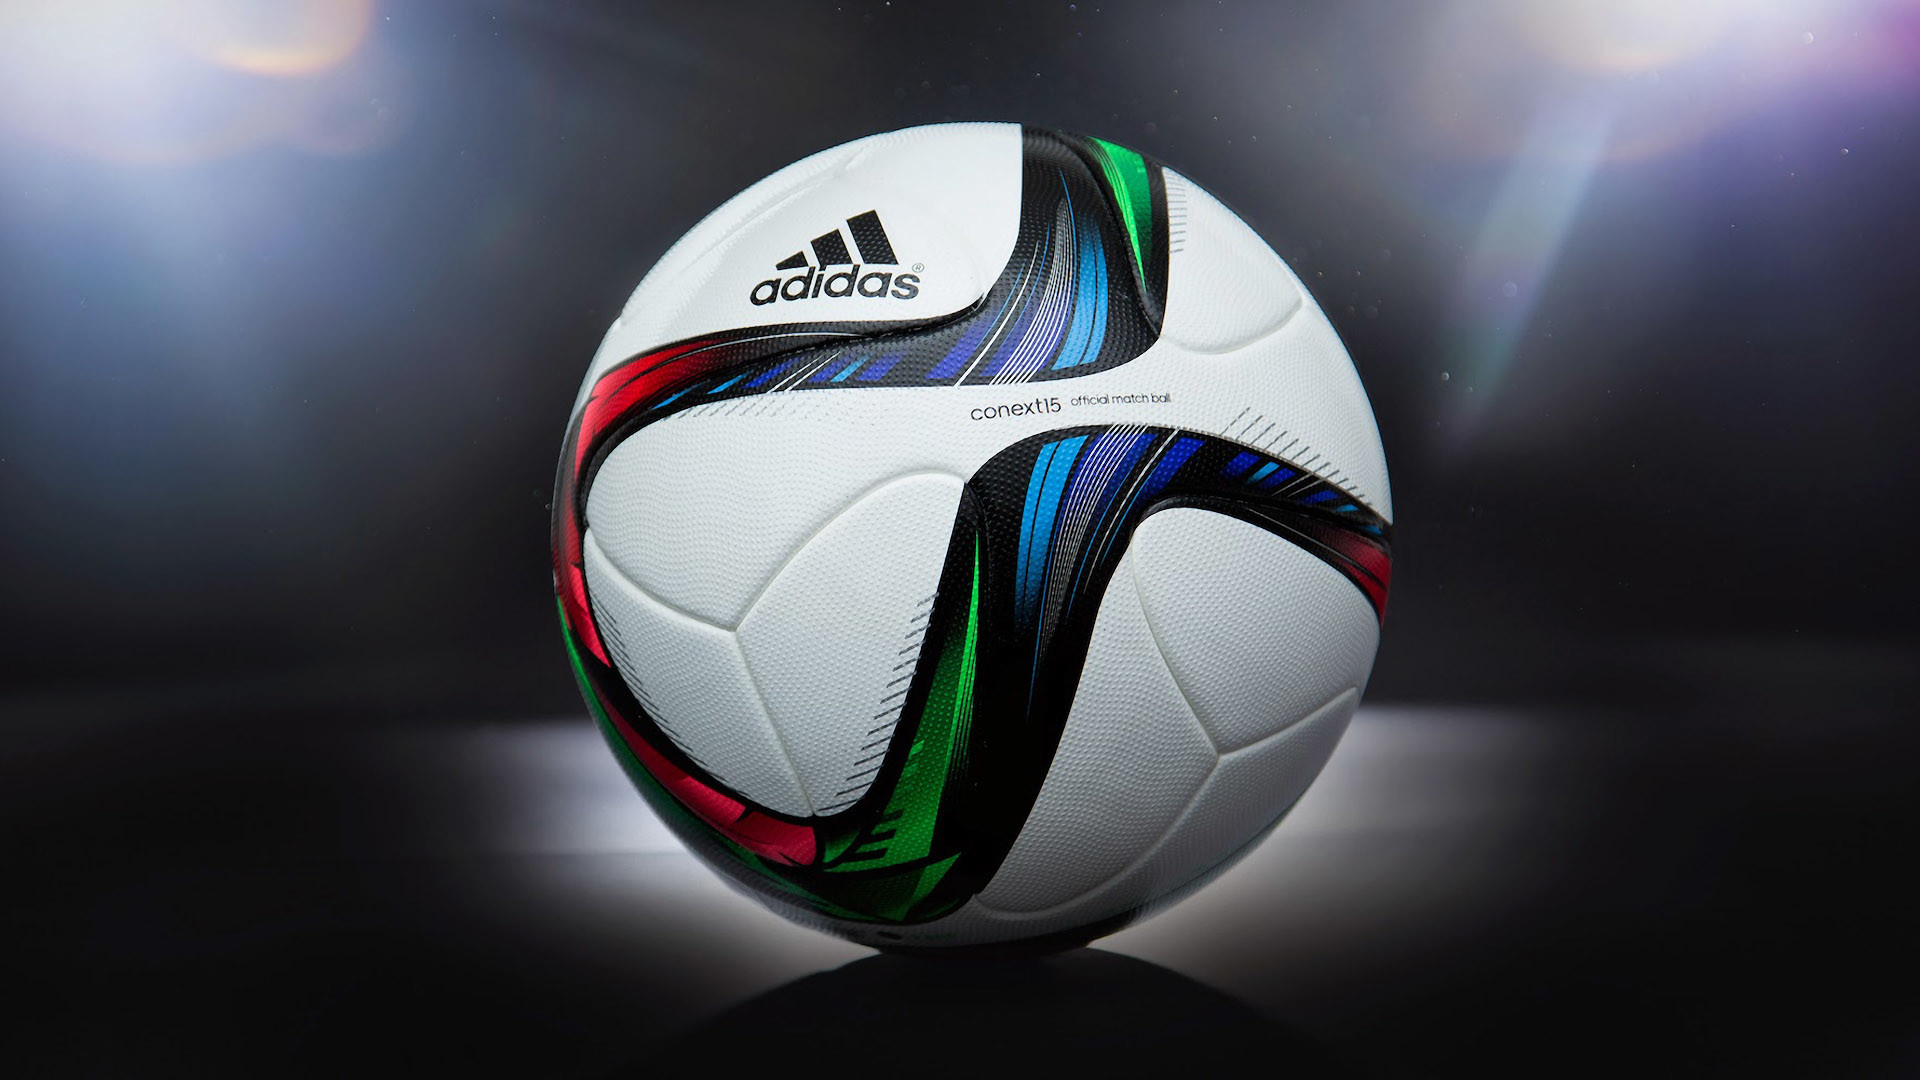 adidas conext soccer wallpaper desktop images download free windows  wallpapers amazing colourful 4k artwork lovely 1920